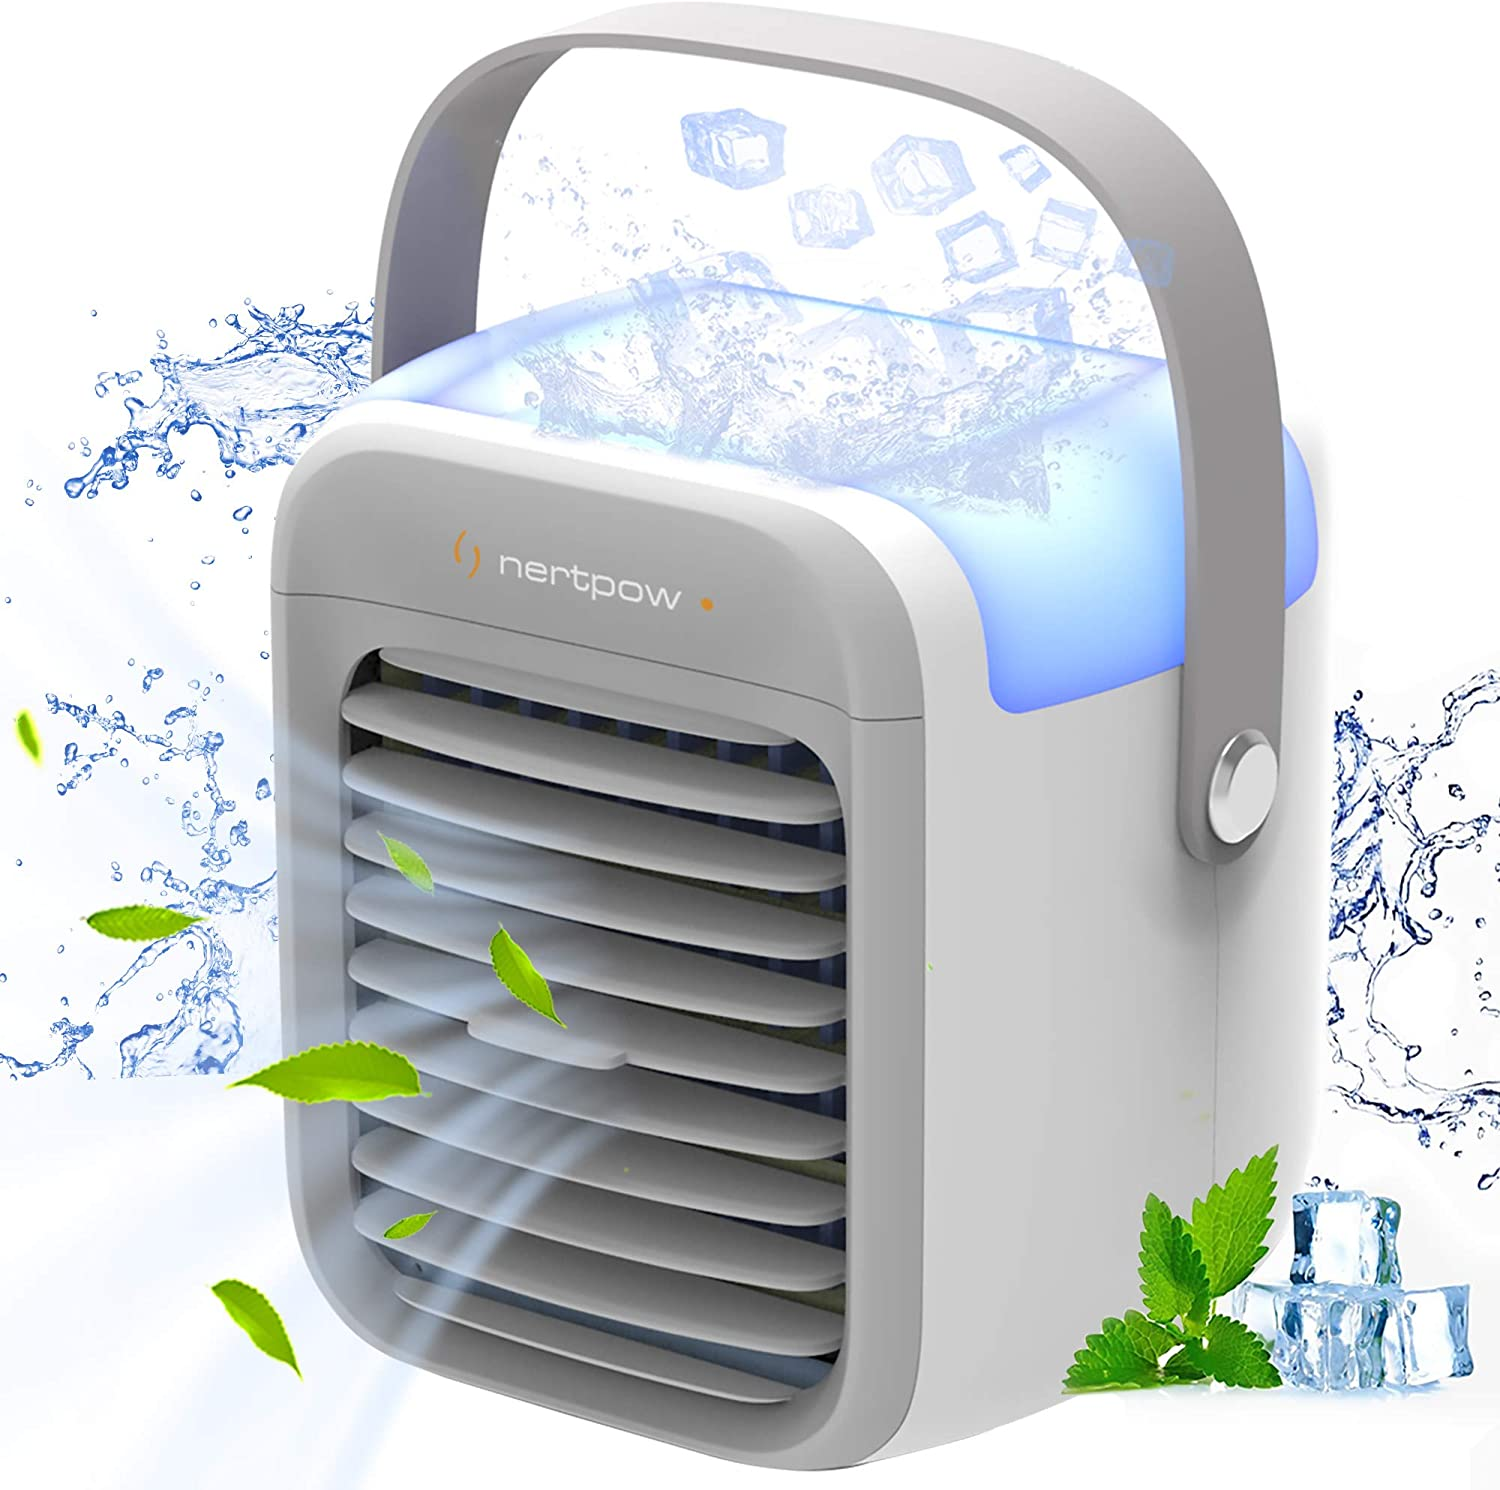 Nertpow Portable Air Conditioner, Portable Cooler, Quick & Easy Way to Cool Personal Space, As Seen On TV, Suitable for Bedside, Office and Study Room. Three Wind Level Adjustment,7 Color